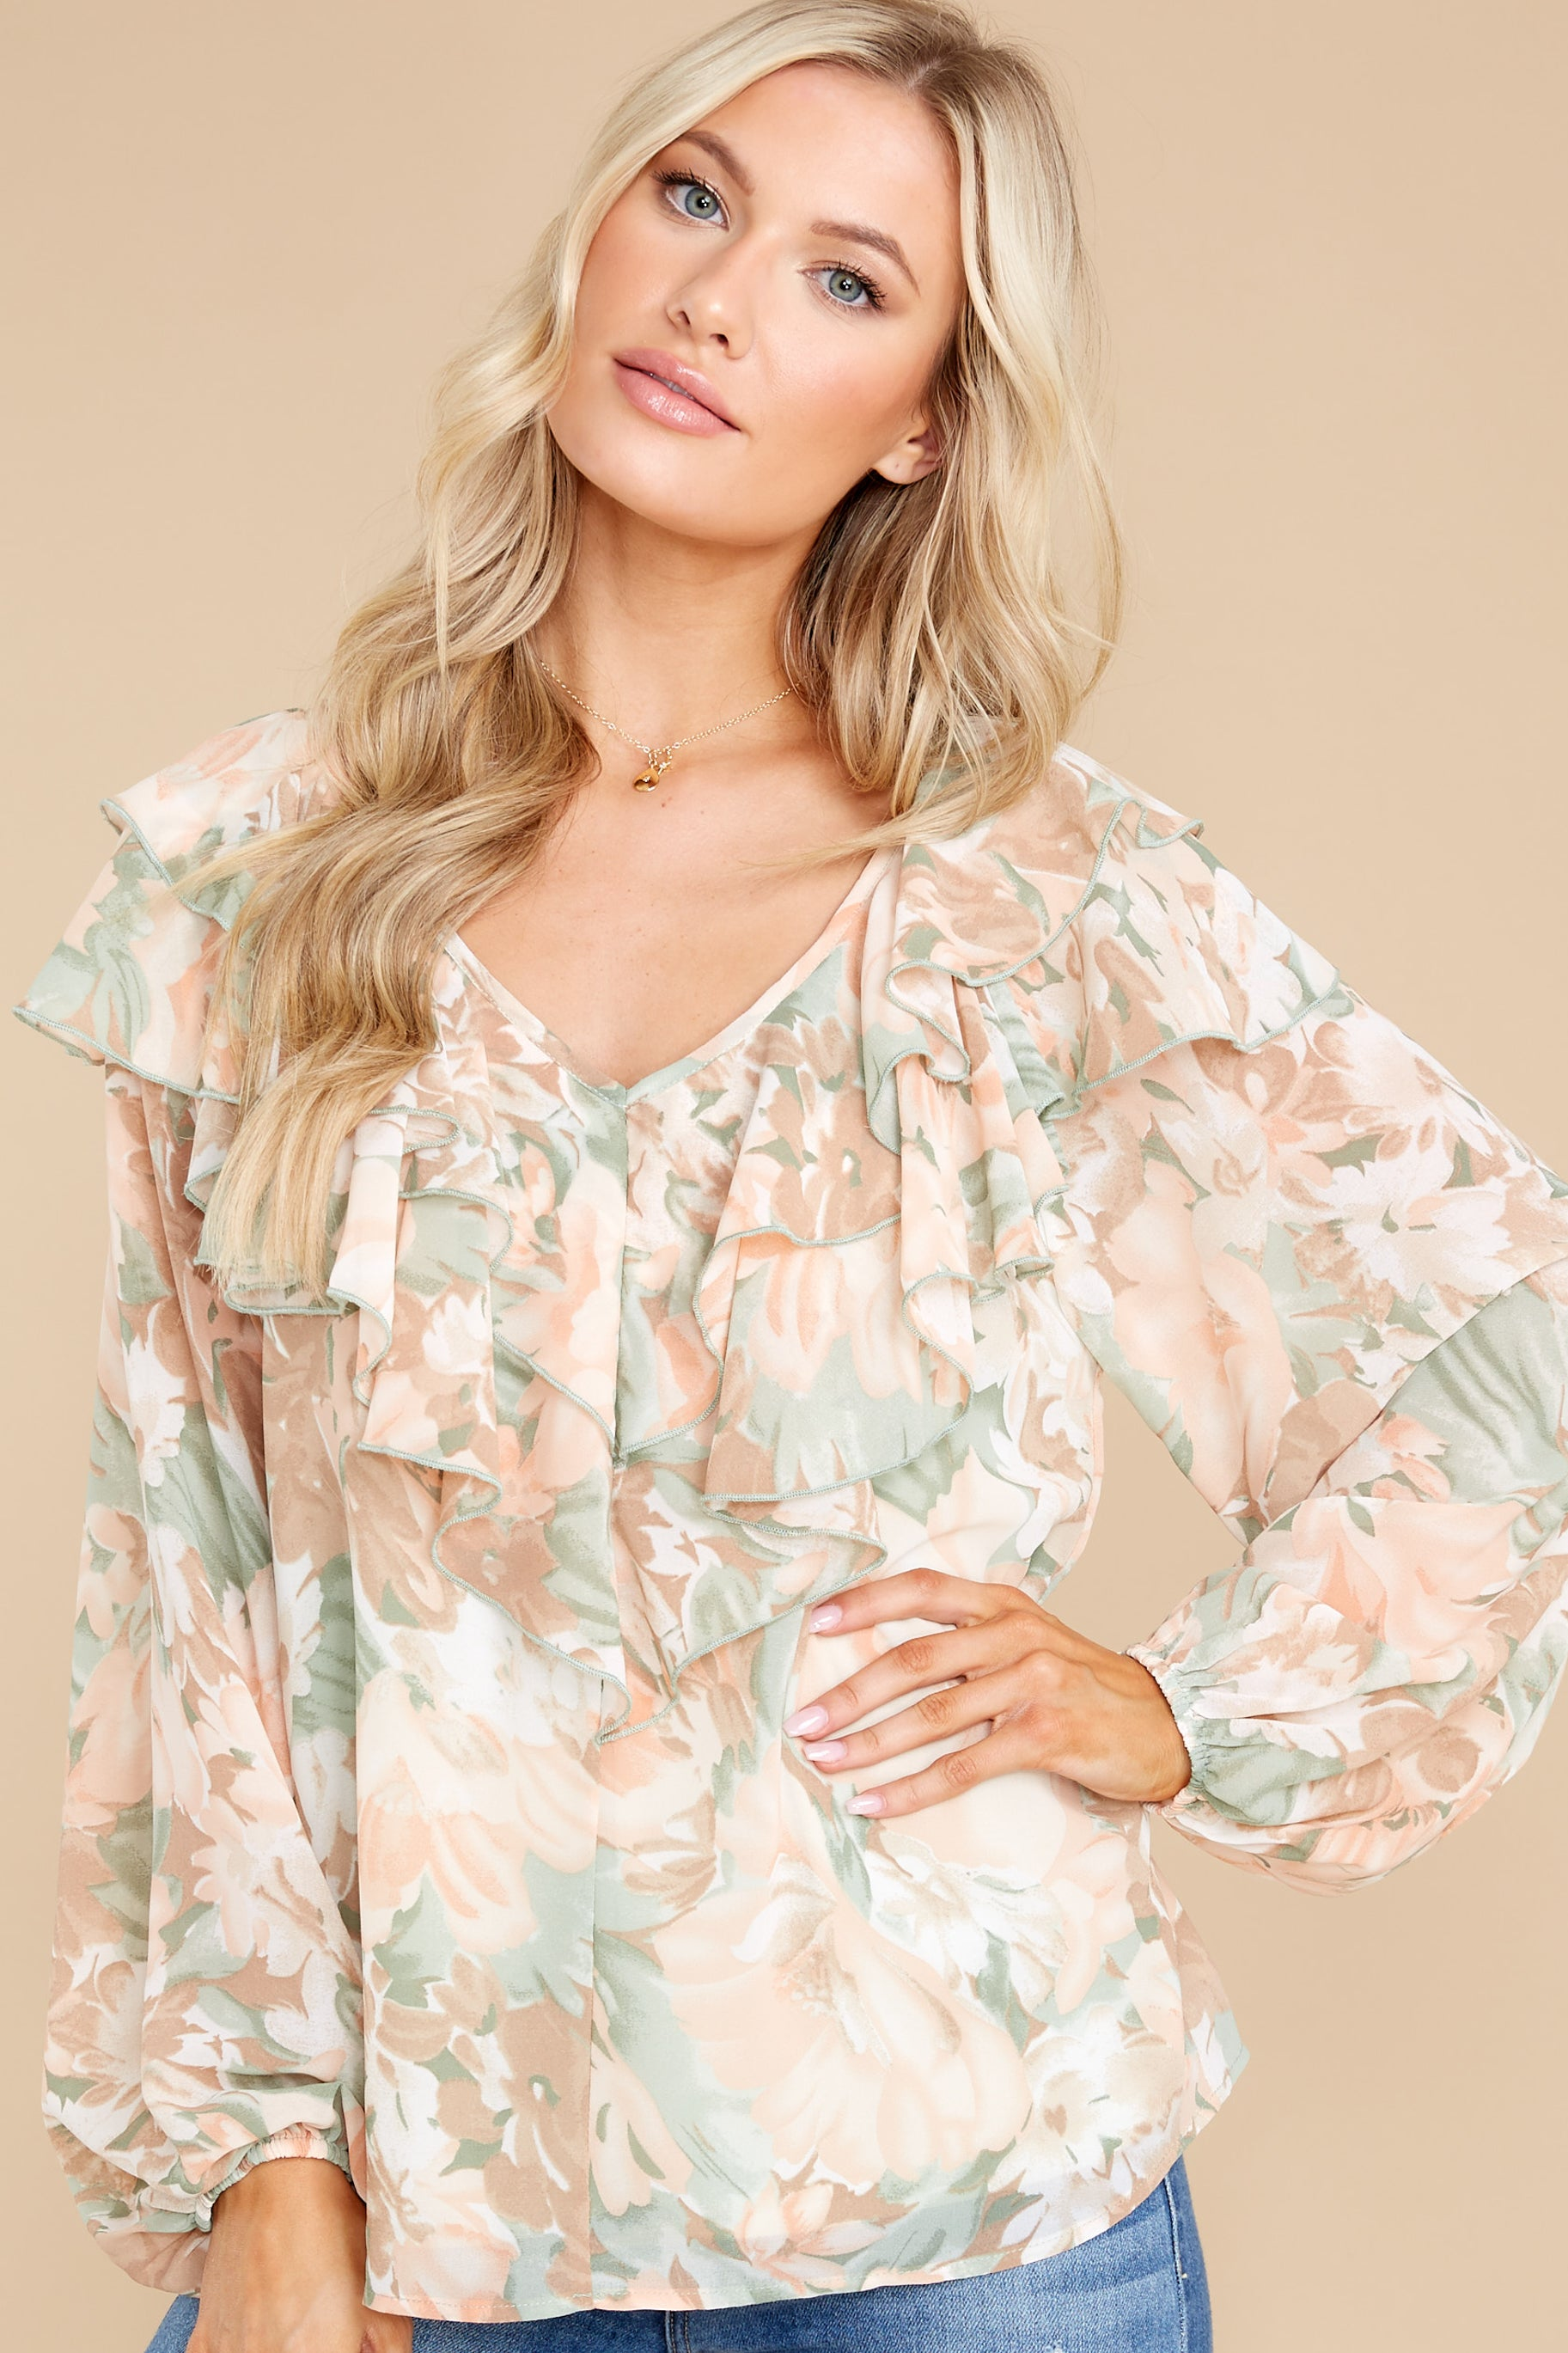 8 Wisteria Meadows Apricot And Sage Floral Print Top at reddress.com